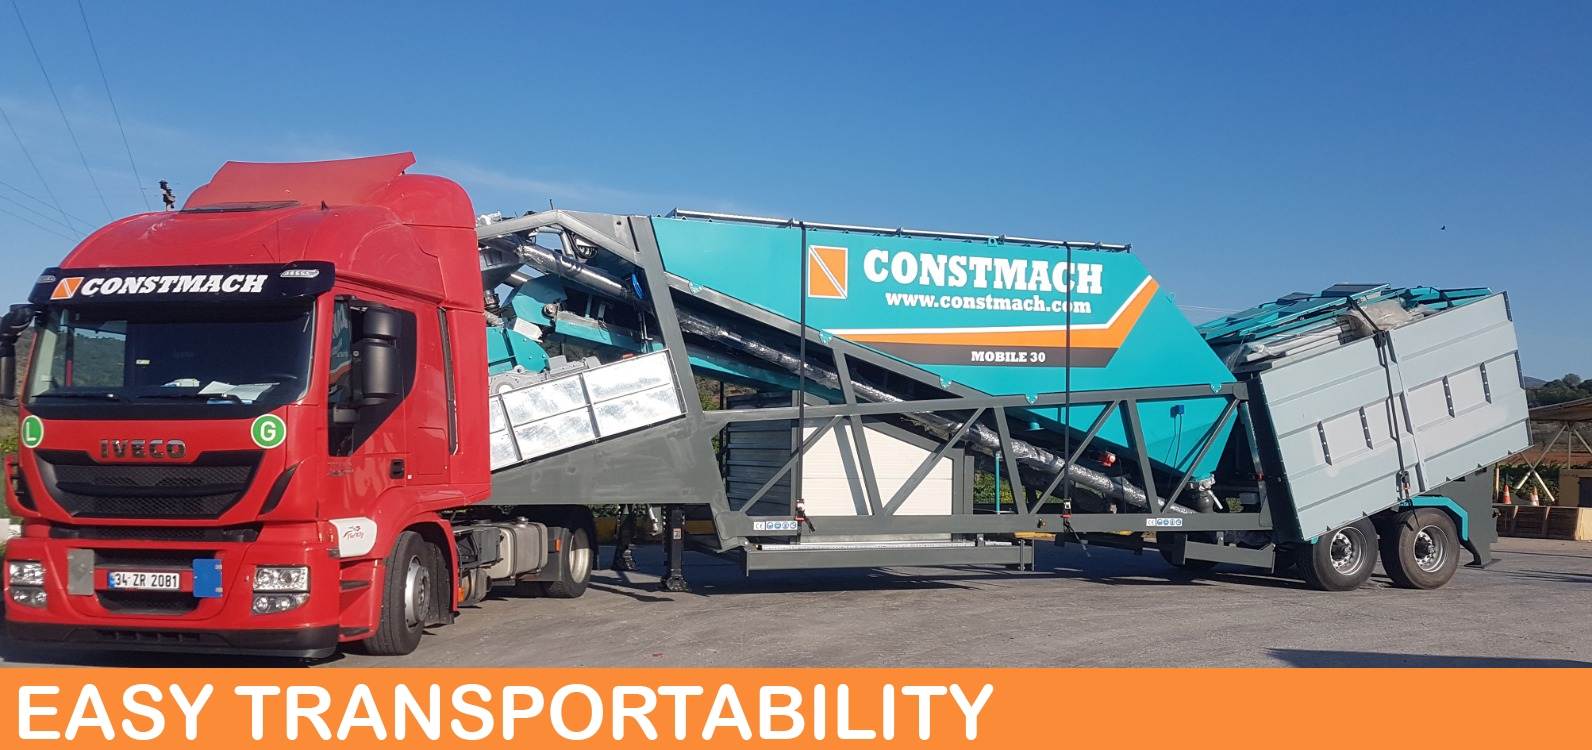 Mobile Concrete Plant - Mobile 30